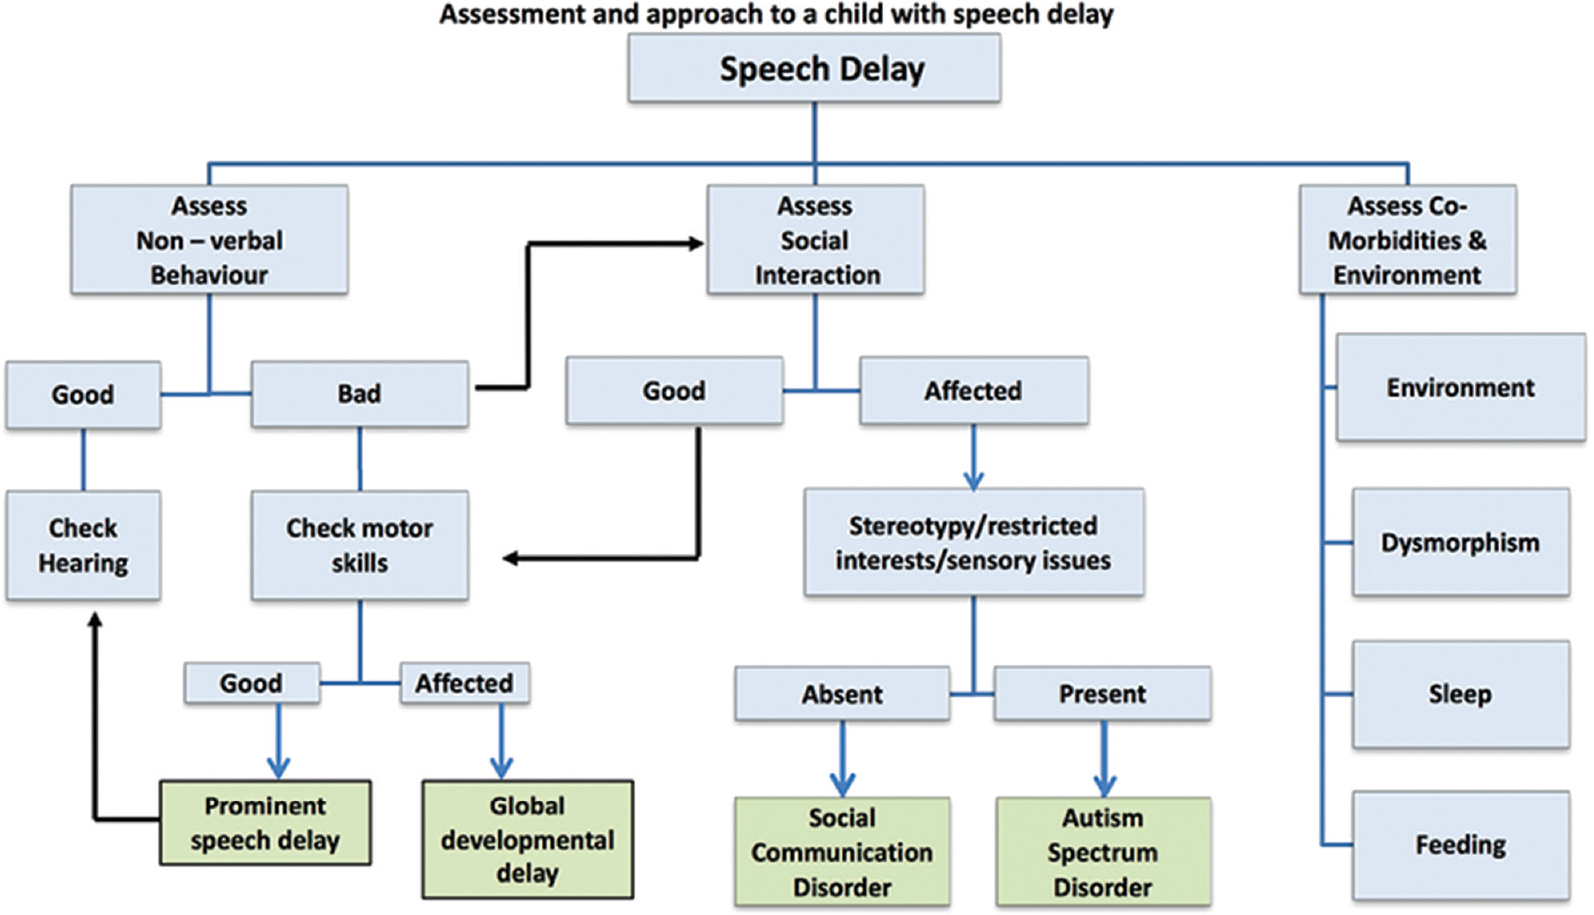 Figure 3: Approach to speech delay.